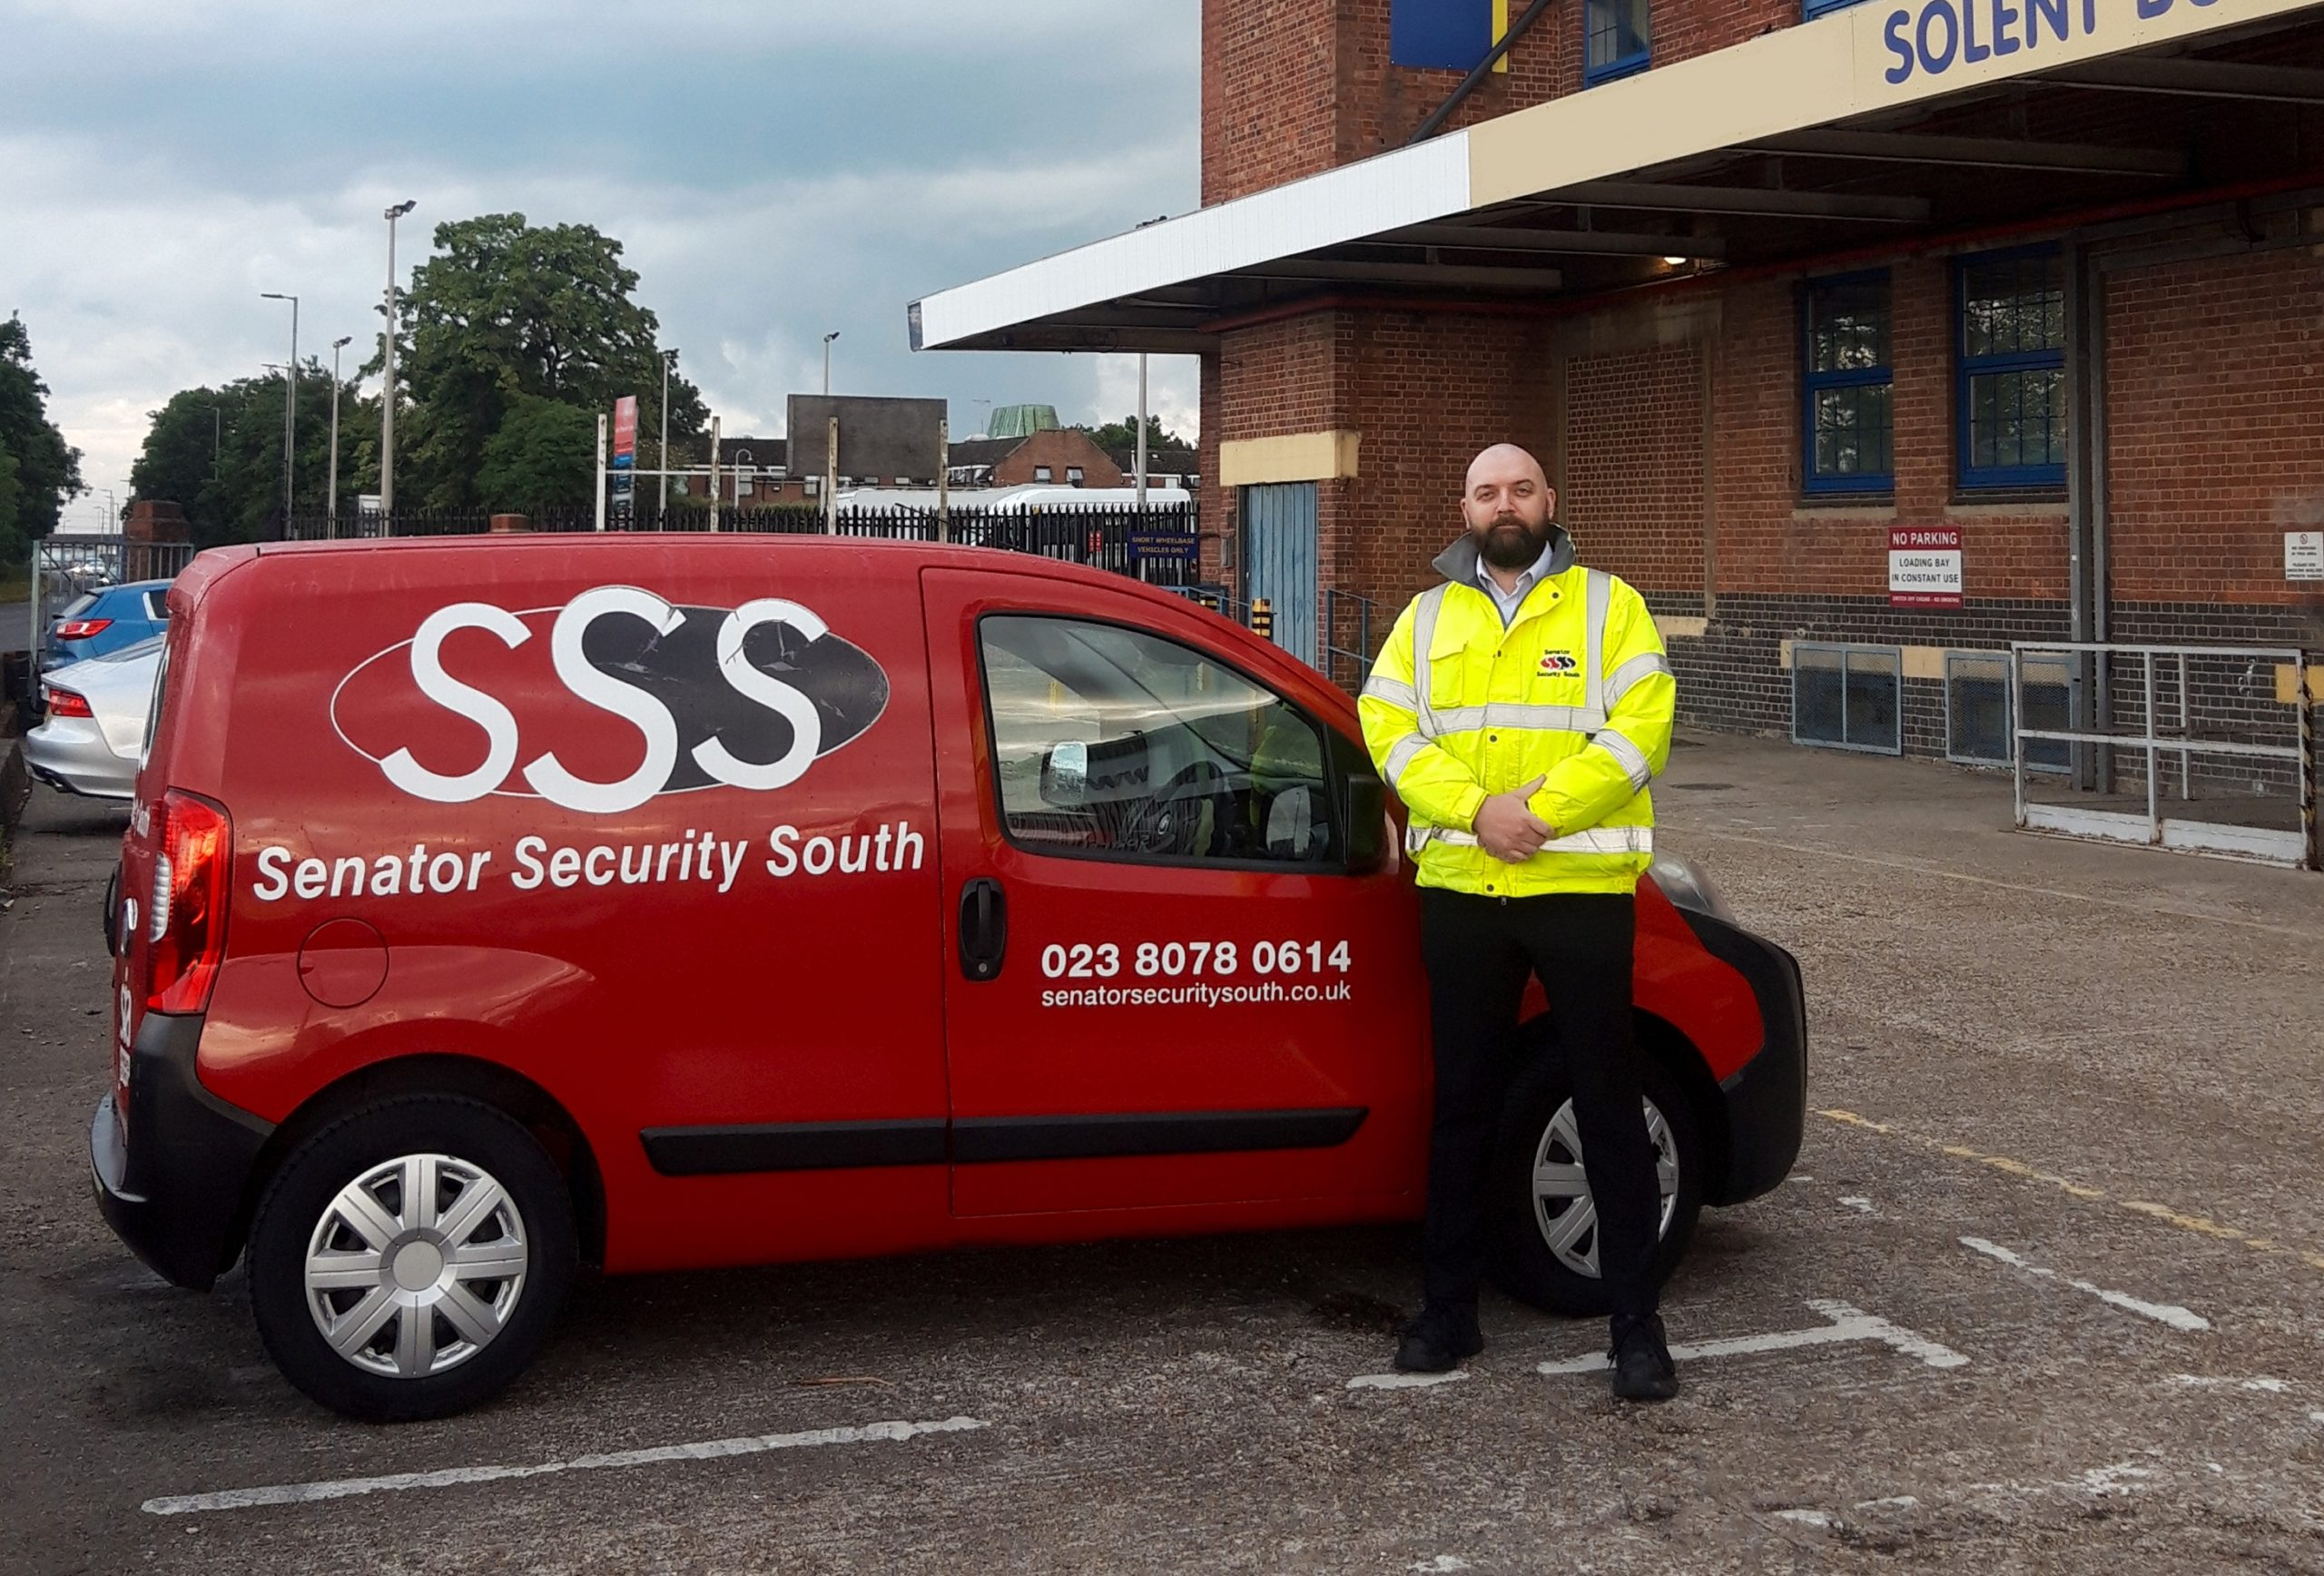 Professional security services in Hampshire